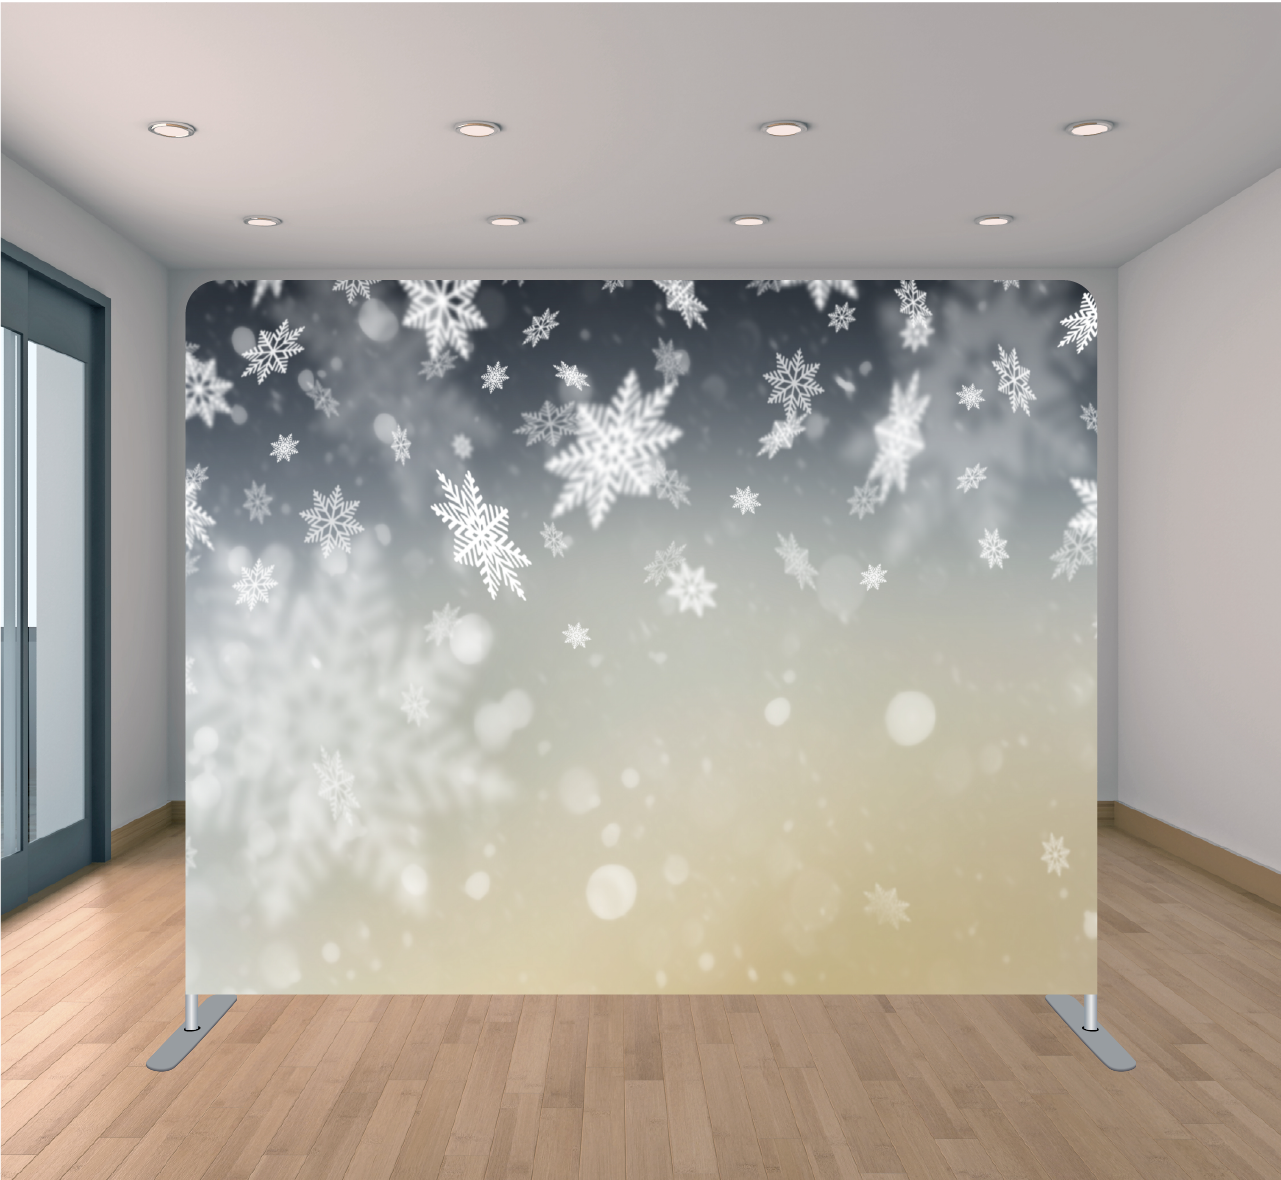 8x8ft Pillowcase Tension Backdrop- Snowflake Bokeh